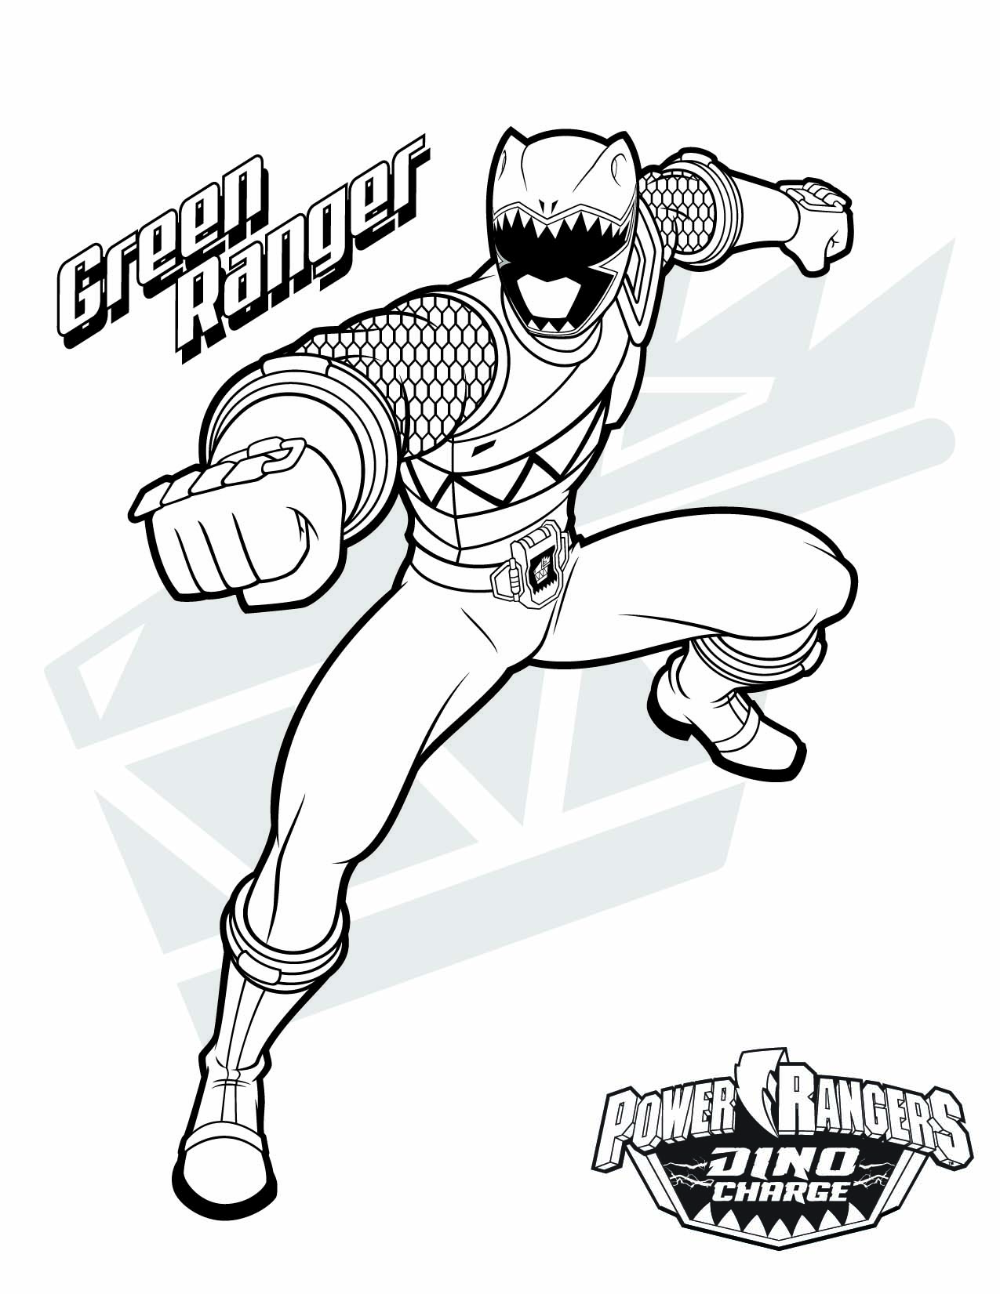 1275x1651 Power Rangers Dino Charge Drawing In 2020 Power Rangers Coloring Pages Green Power Ranger Power Rangers Dino